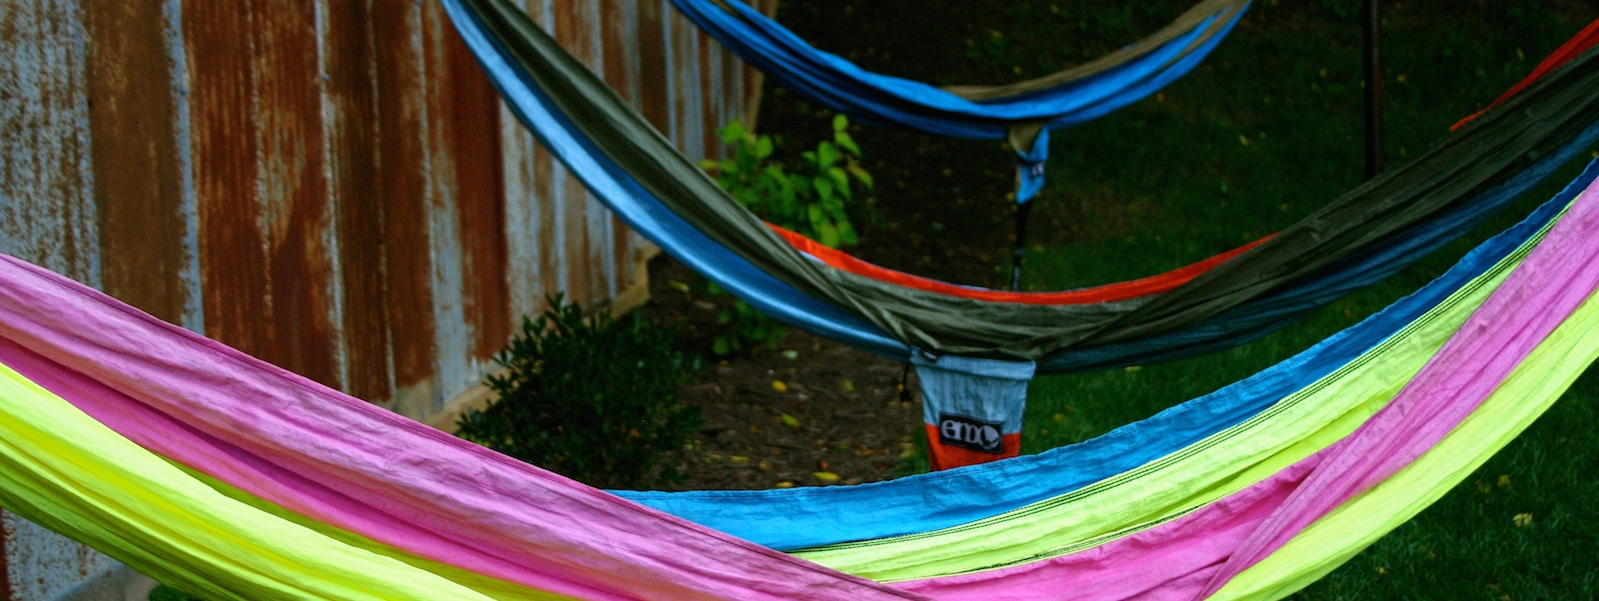 Hammocks in Yard Web